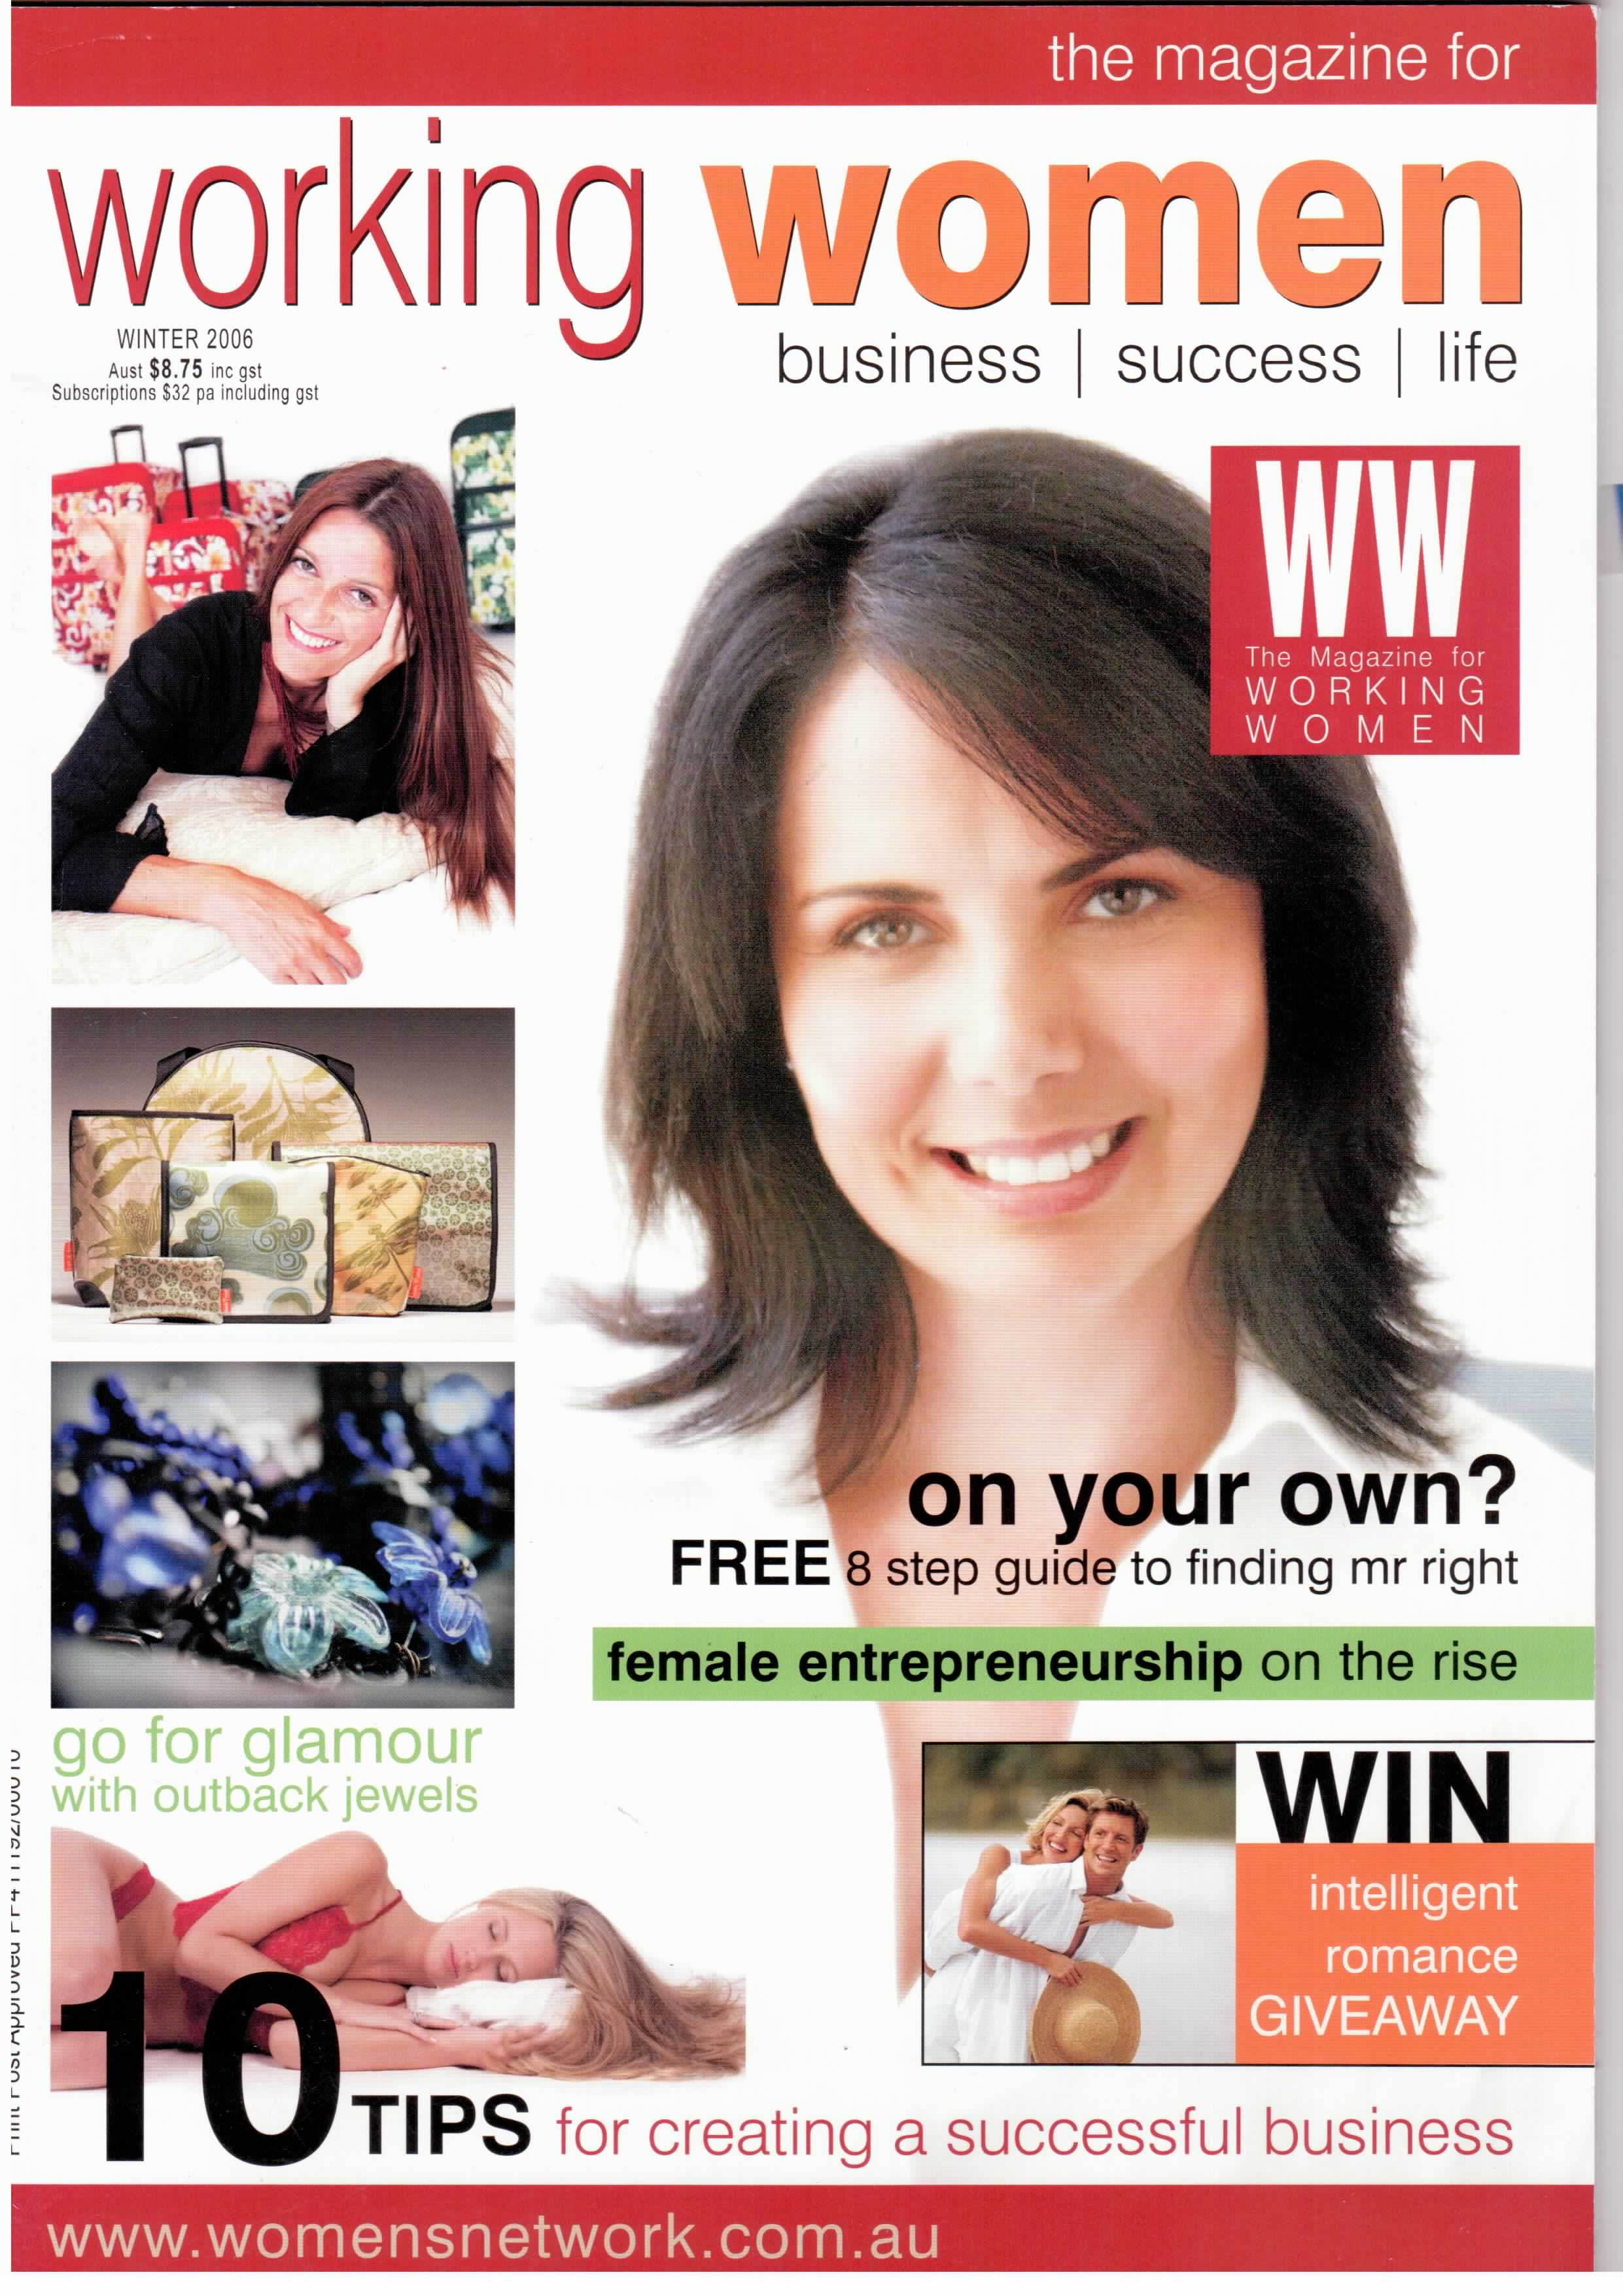 Working Women Magazine cover winter 2006